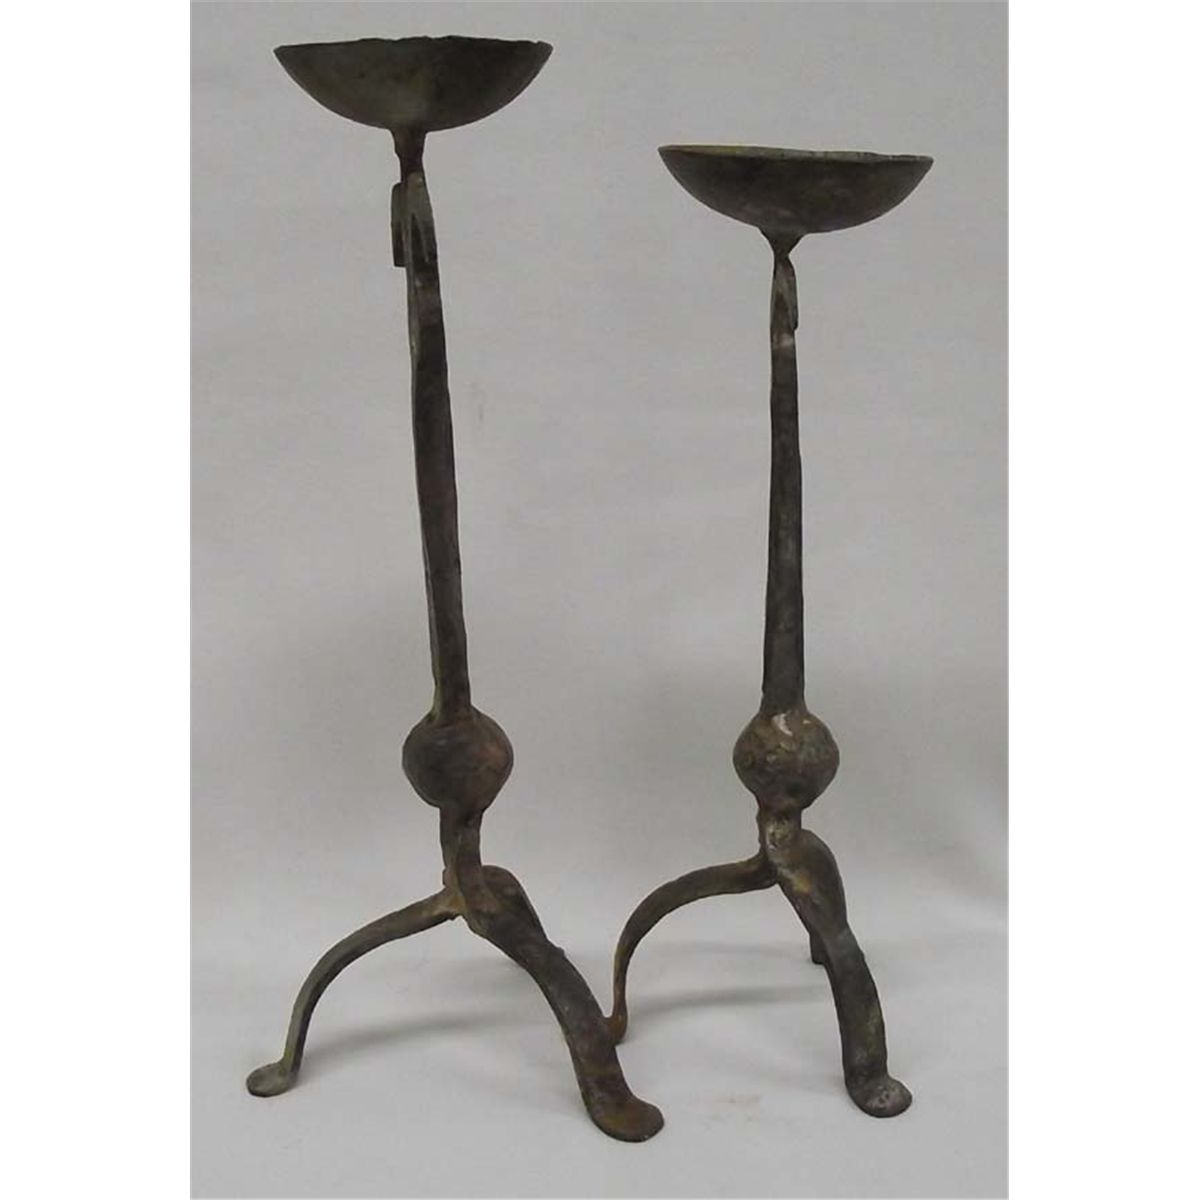 Iron Candle Stand Designs : Cast iron candle holder antique best decor